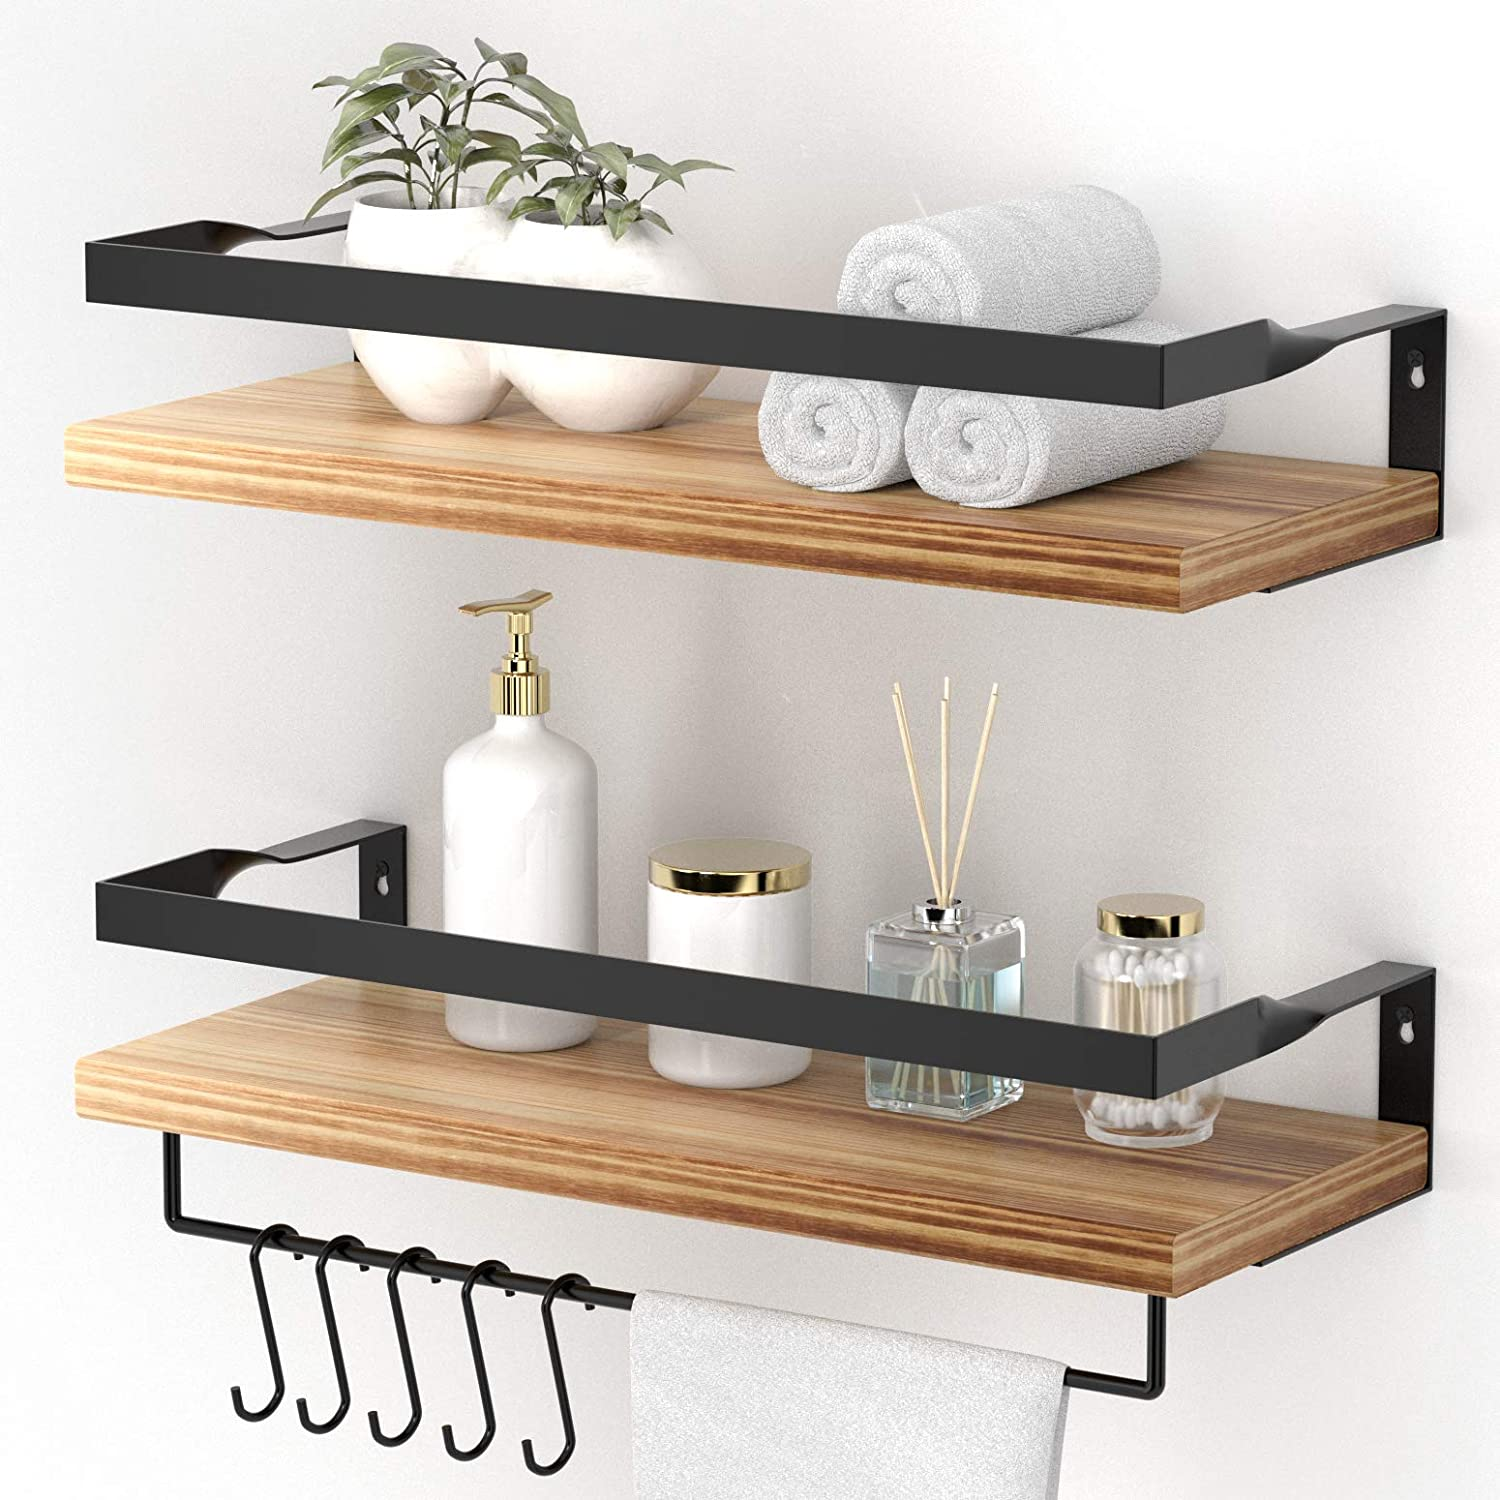 Amazon Com Endoto Floating Shelves With Towel Bar Wall Mounted Storage Organizer For Bathroom Kitchen Bedroom Living Room Hallway Set Of 2 Dining